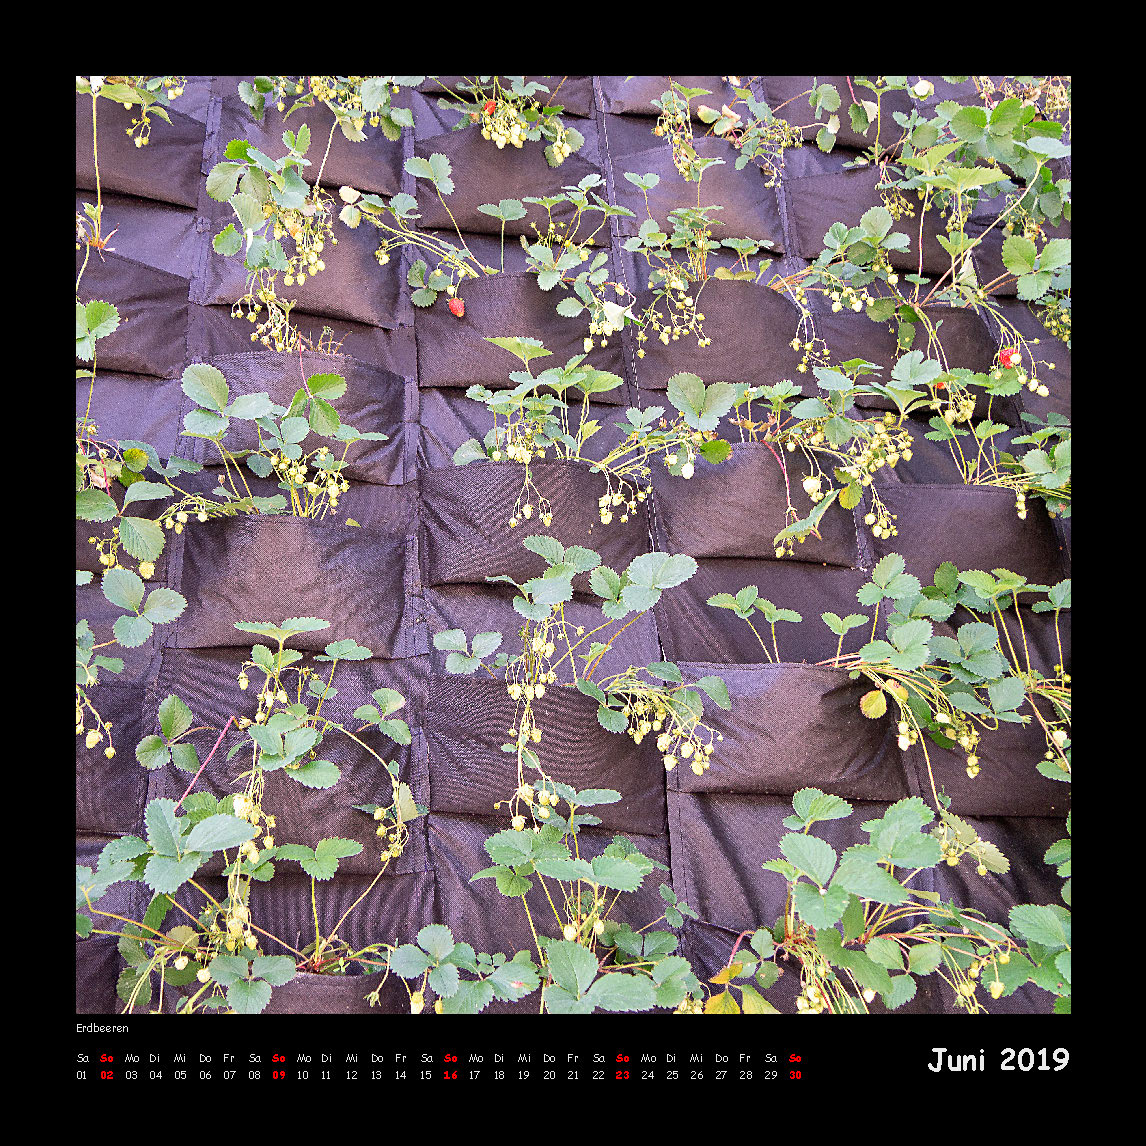 Kalender Quadraturen 2019 - Juni (c)decoDesign-peters